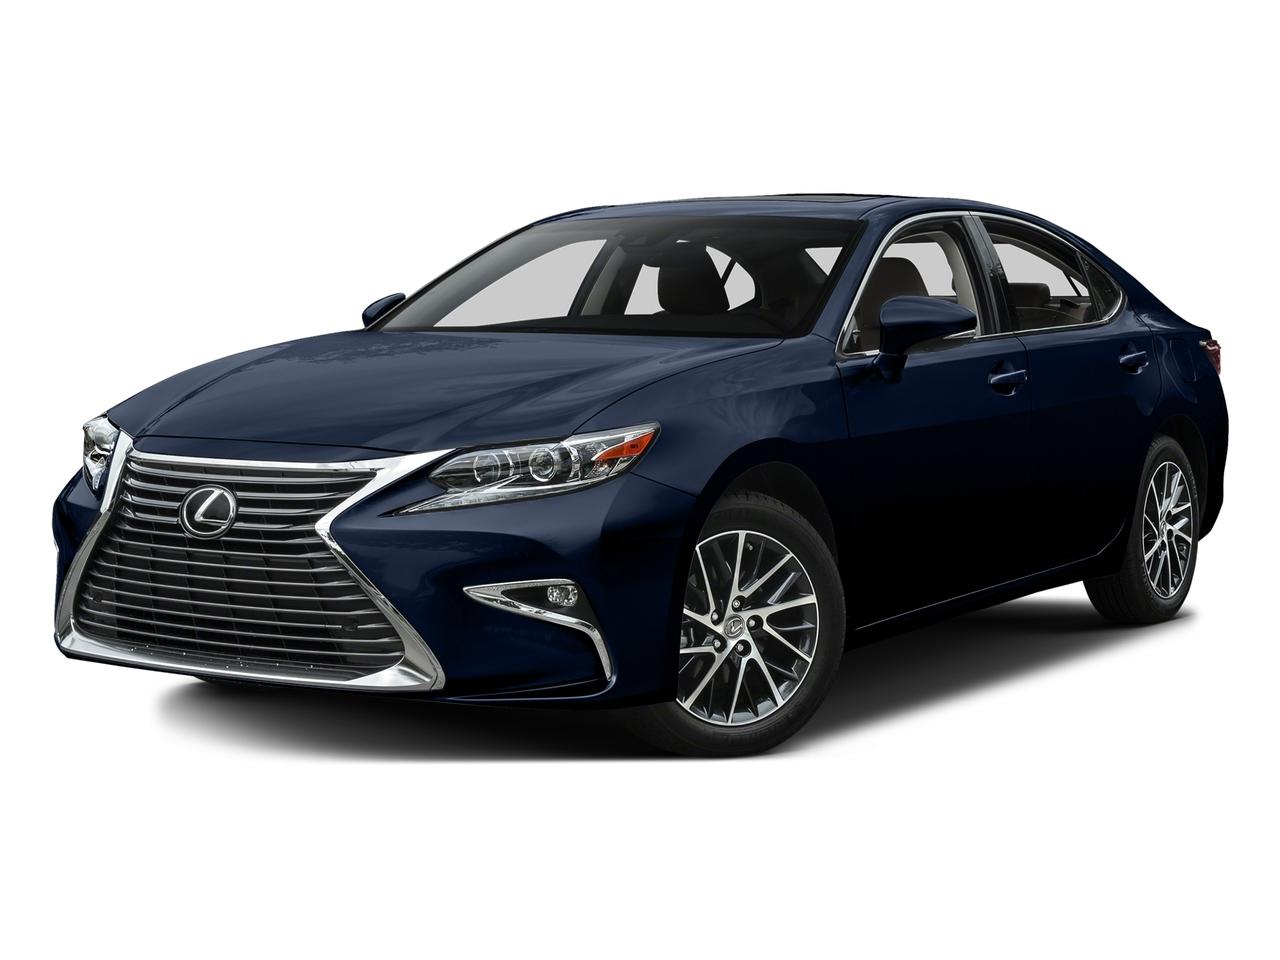 2017 Lexus ES 350 Vehicle Photo in Broussard, LA 70518